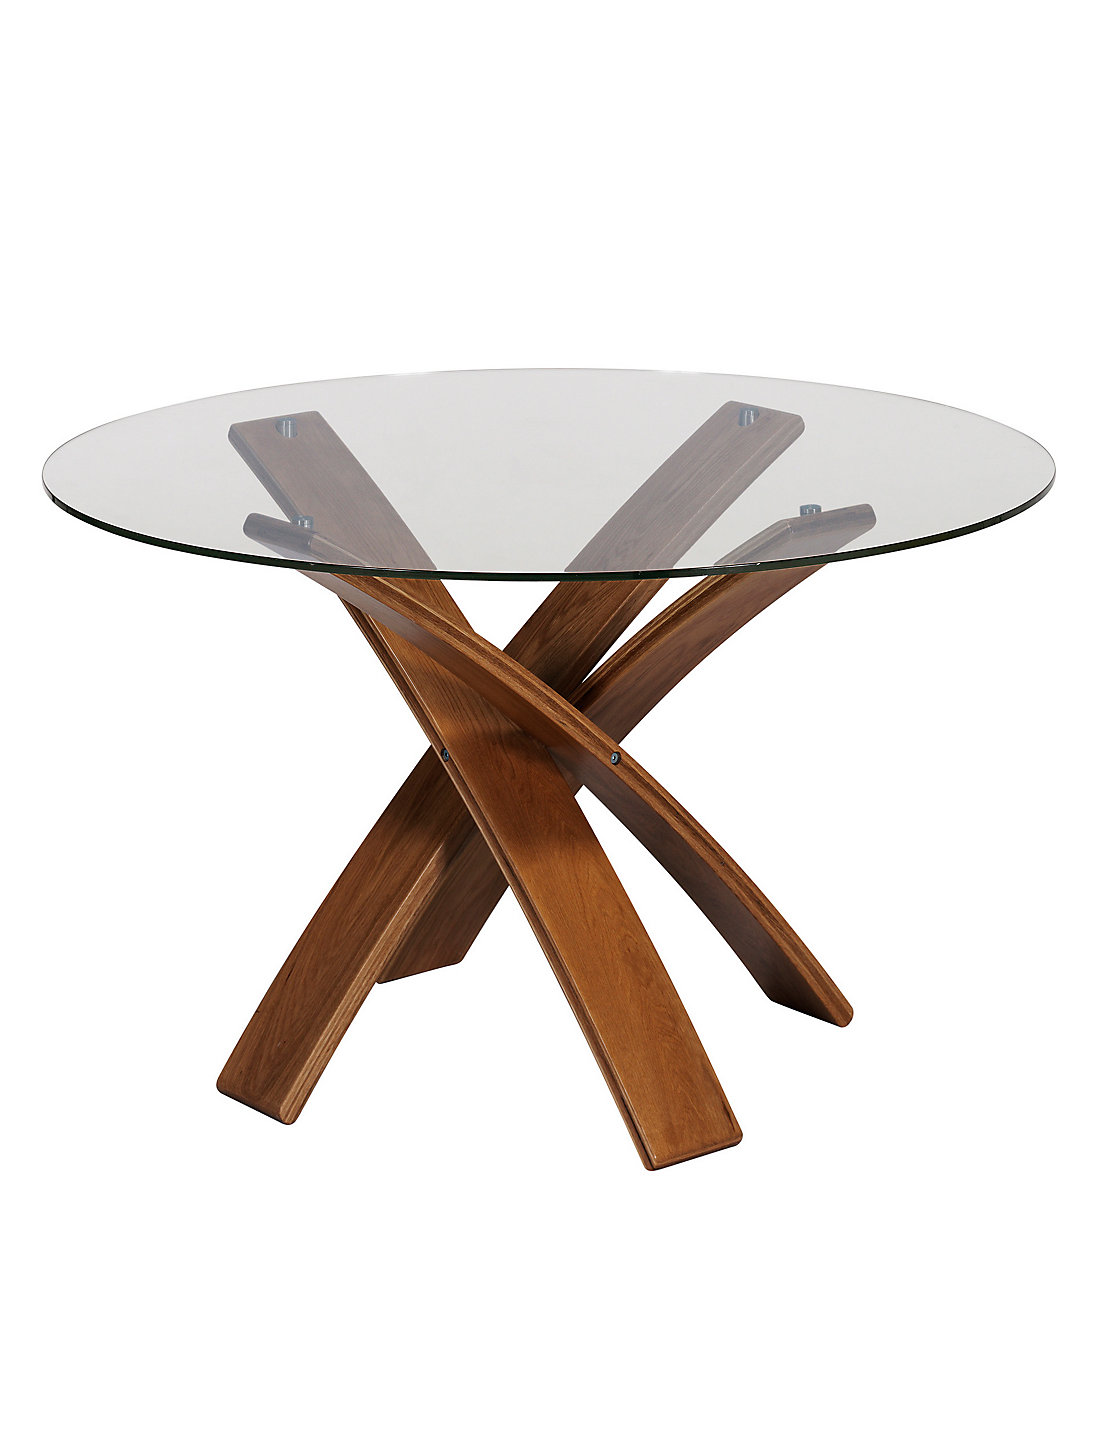 Conran Coffee Table Marks And Spencer Design Ideas